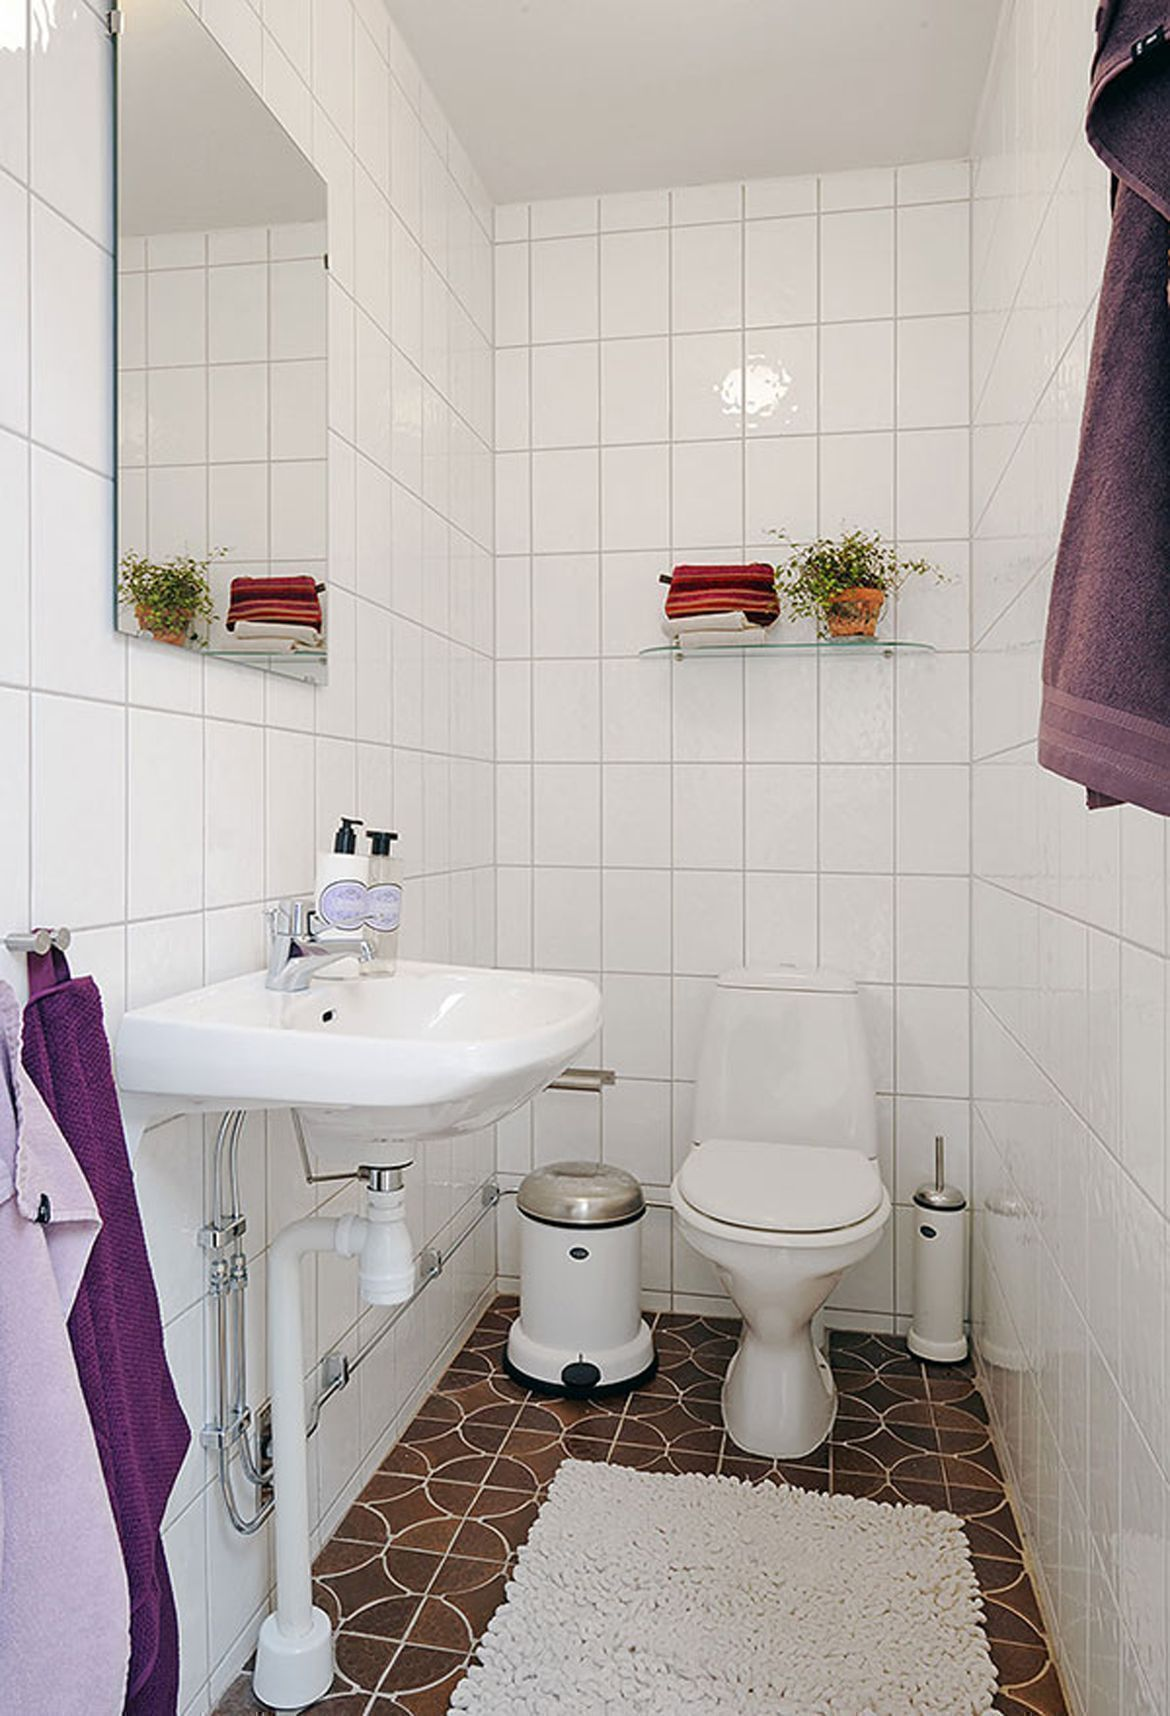 Bathroom Ideas: From Simple Makeovers to Major Overhaul